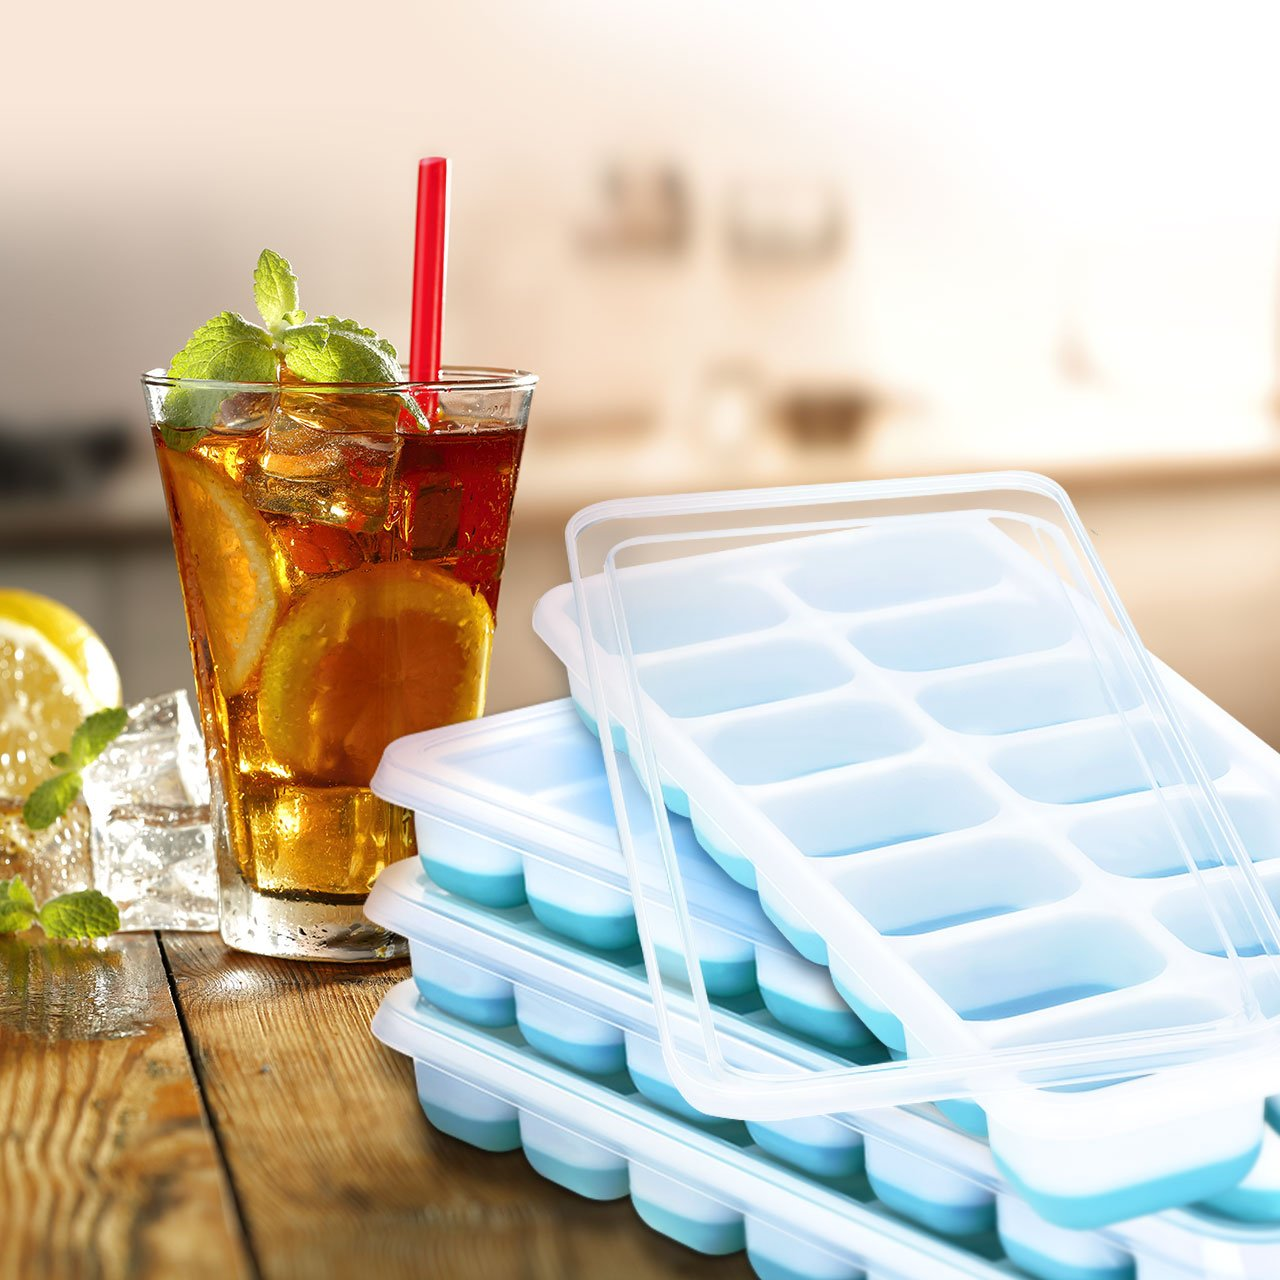 OMorc Ice Cube Trays 4 Pack, Easy-Release Silicone and Flexible 14-Ice Trays with Spill-Resistant Removable Lid, LFGB Certified & BPA Free, Stackable by OMORC (Image #7)